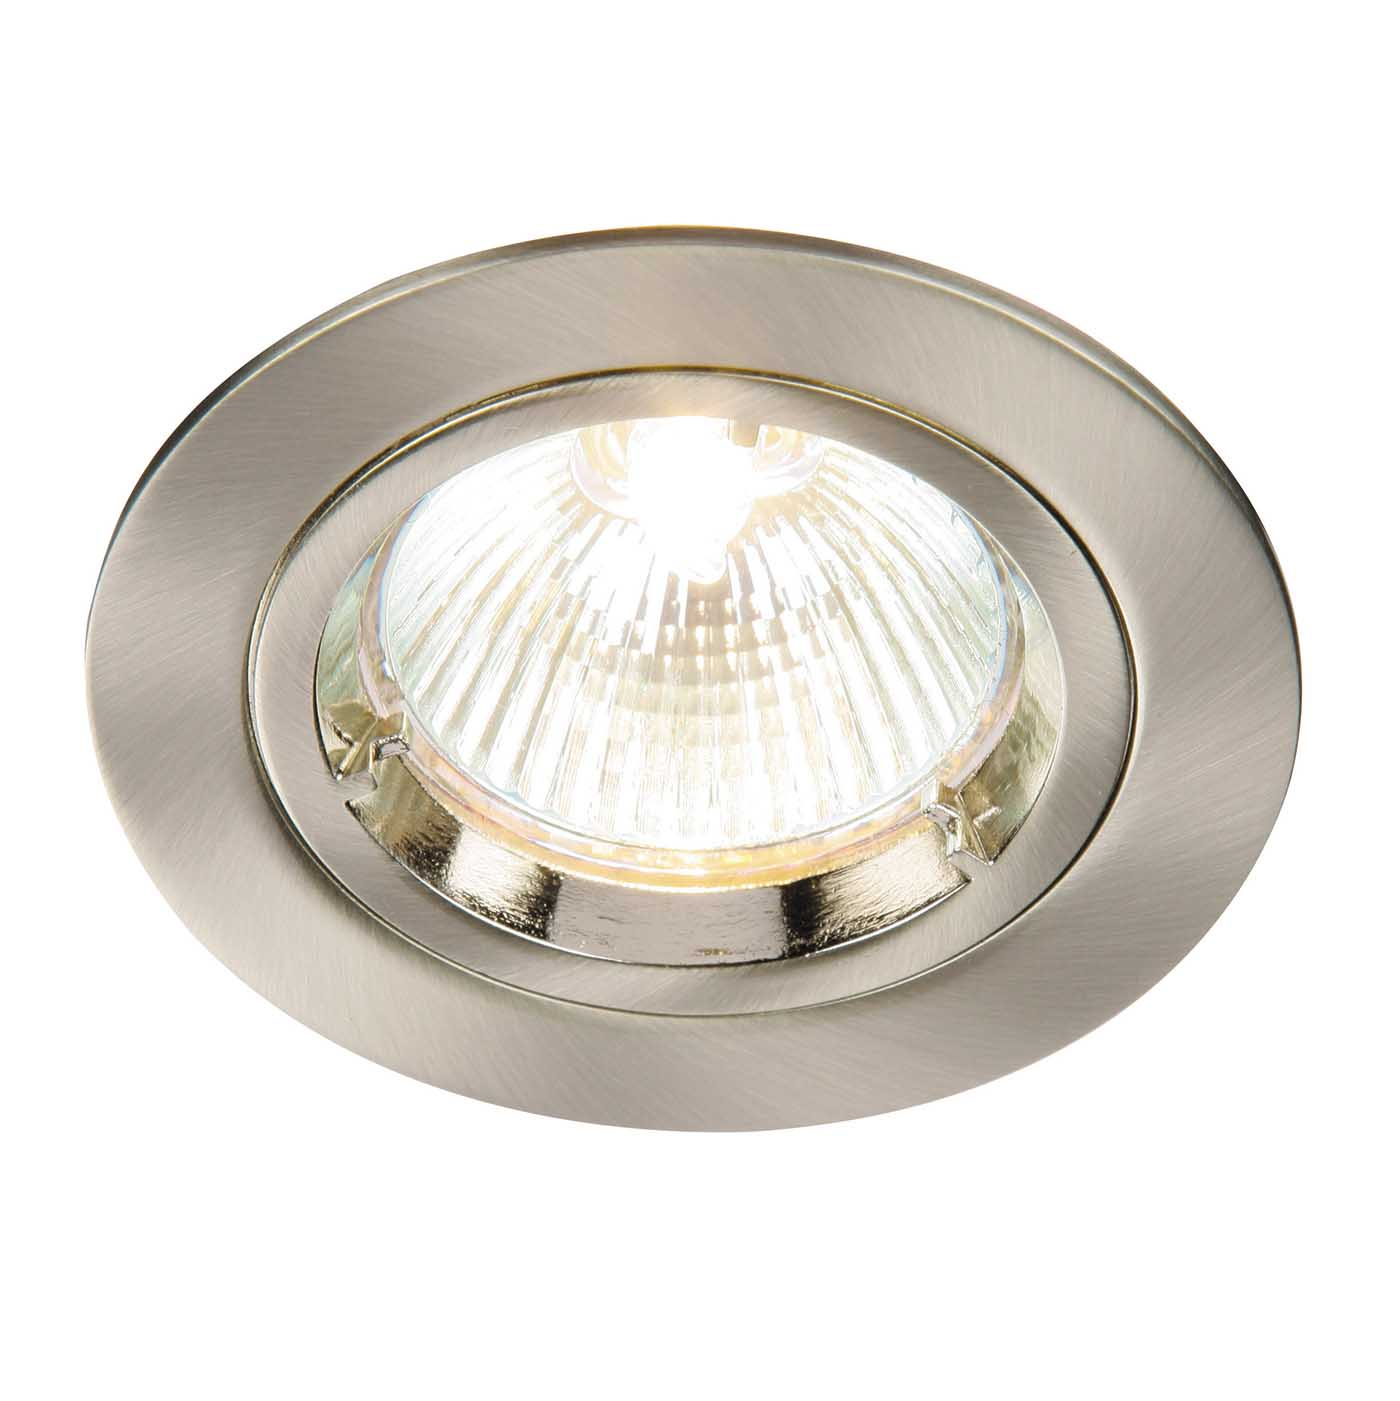 Saxby Cast Indoor Recessed Fixed Light Satin Nickel Effect 50W GU10 Reflector Thumbnail 1